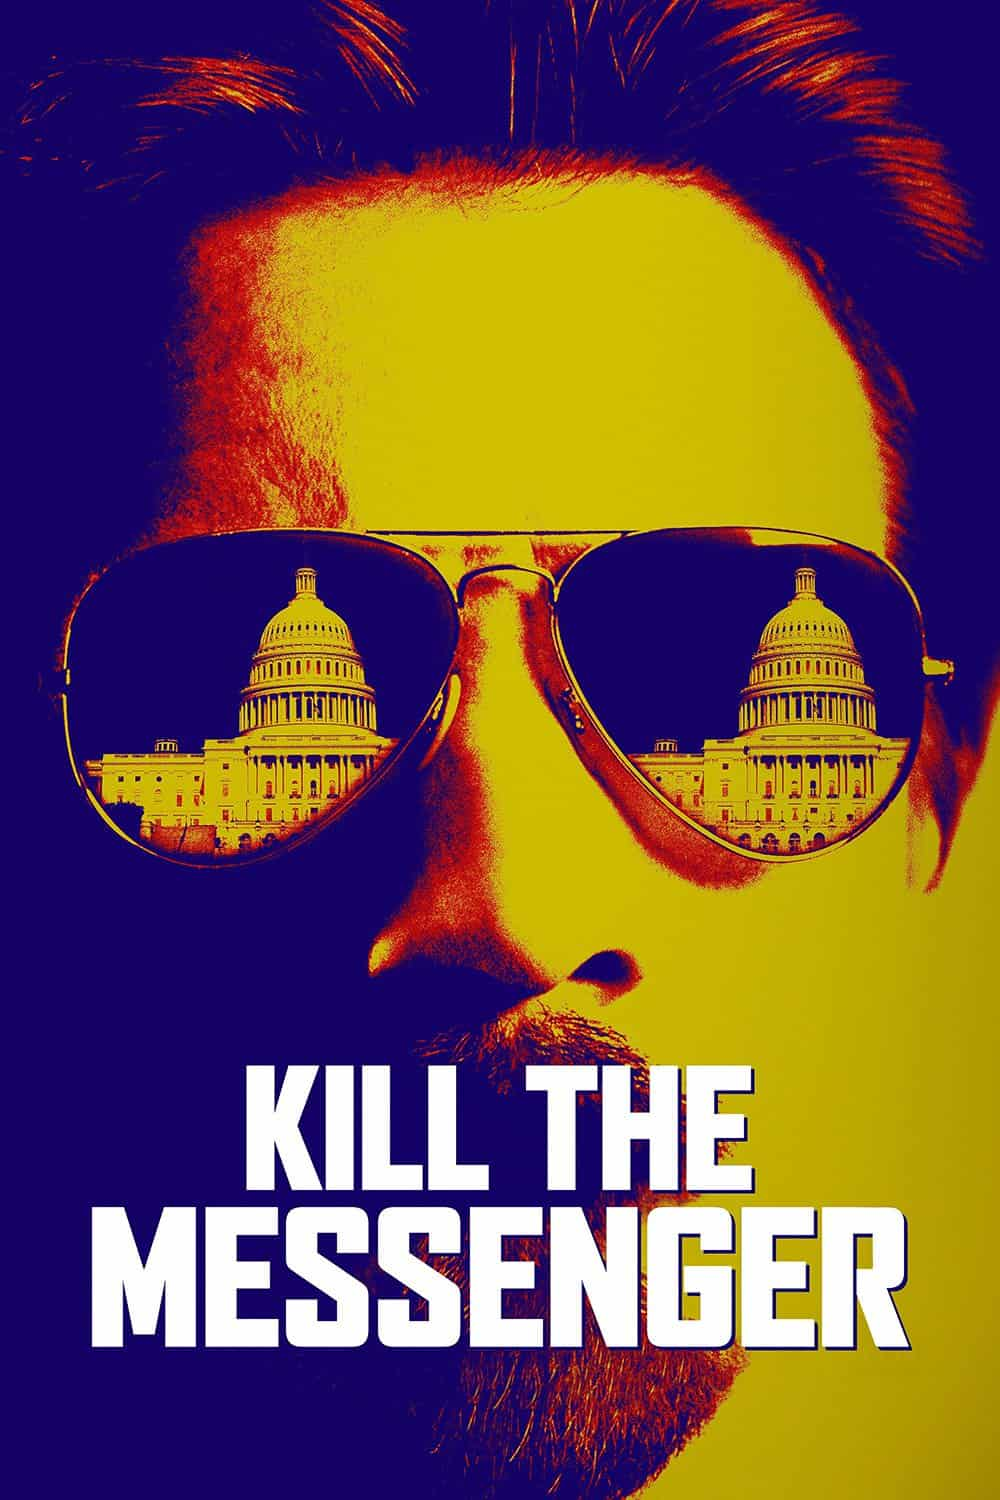 Kill the Messenger, 2014